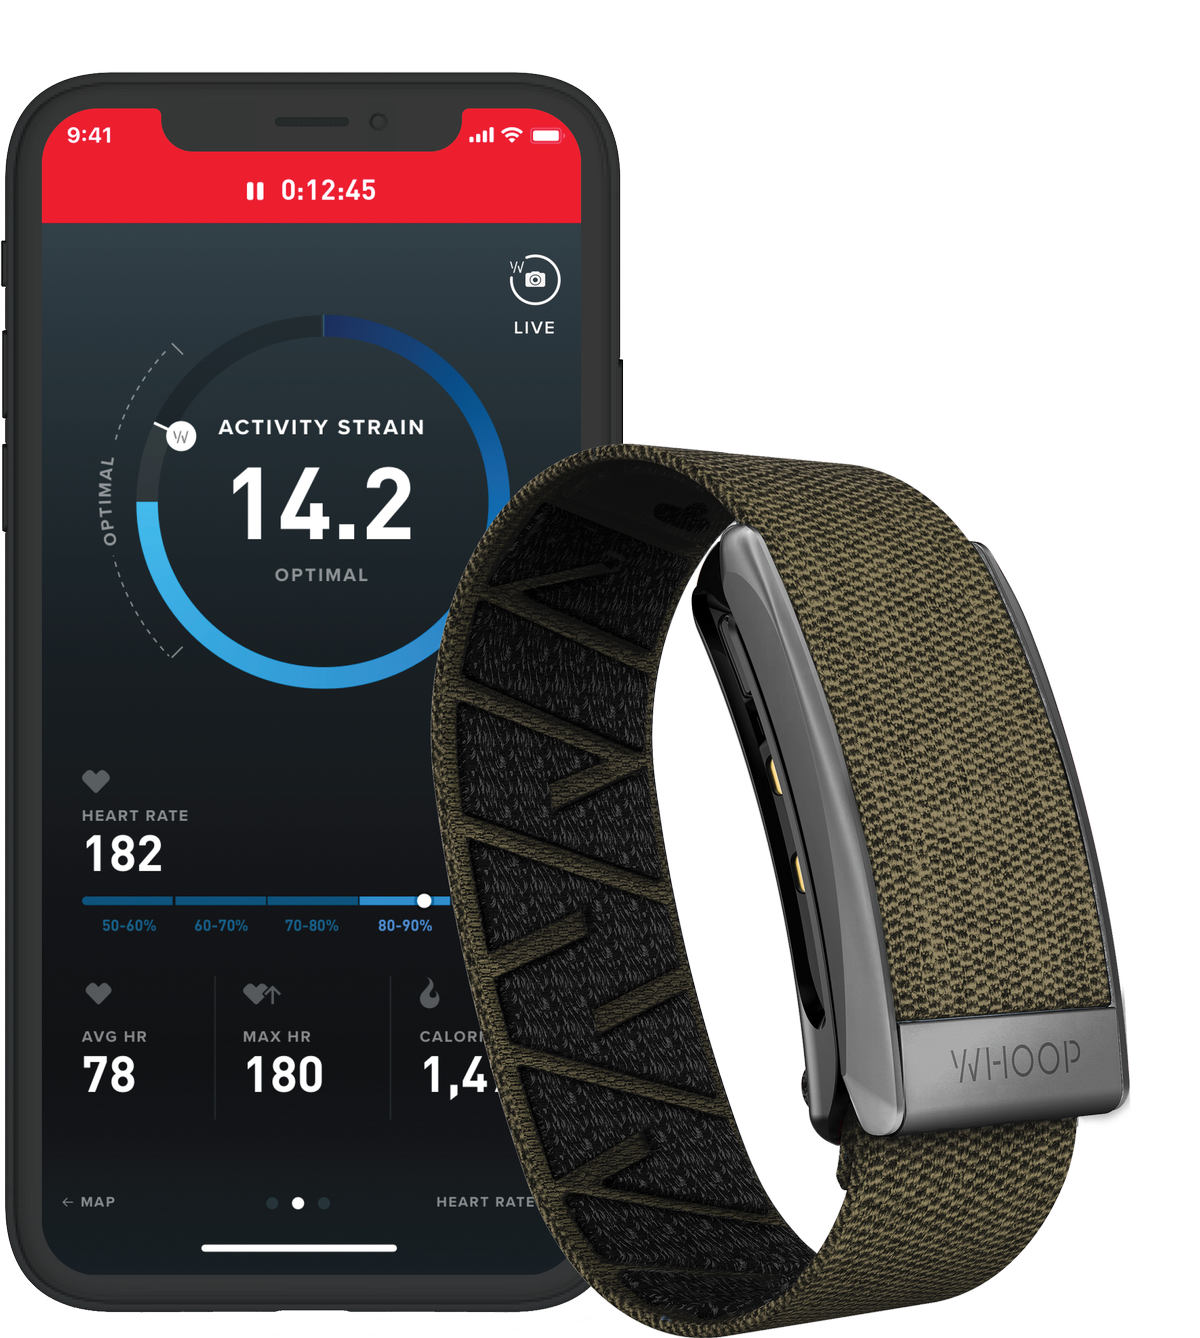 WHOOP is a fitness tracker that focuses on sleep and recovery, enabling people to know when they should train and when they should rest / WHOOP